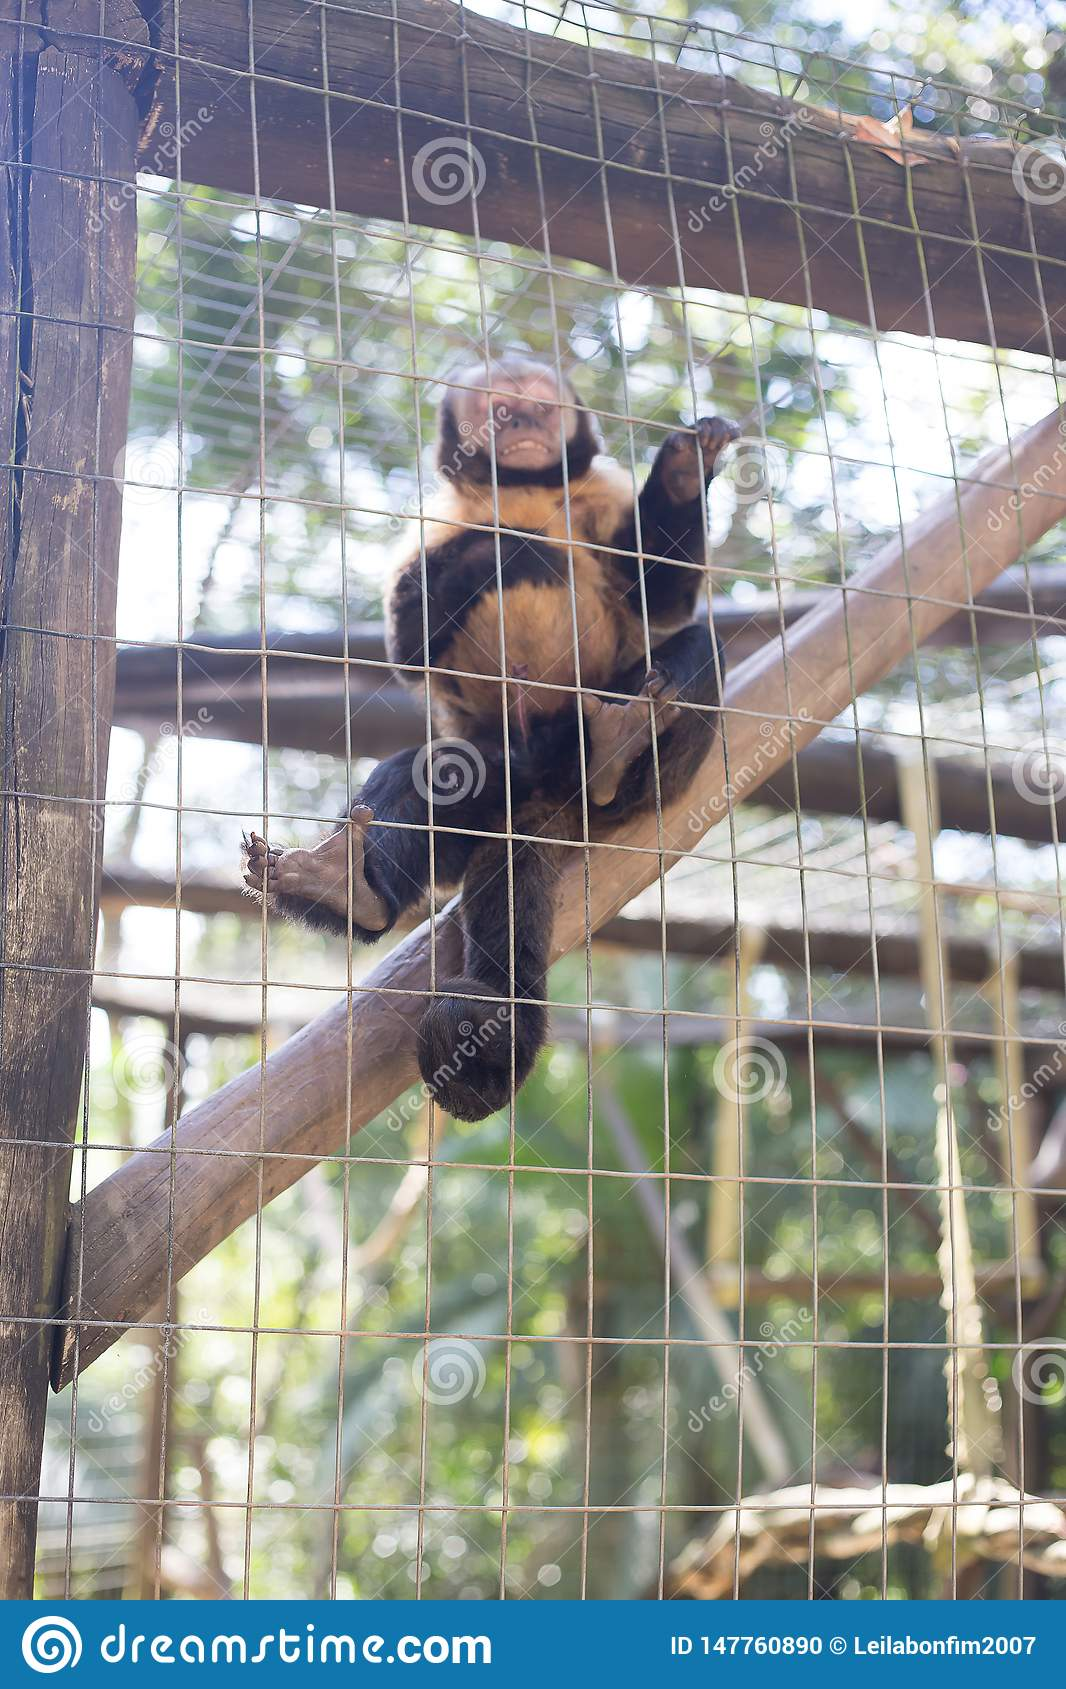 A monkey in the cage.